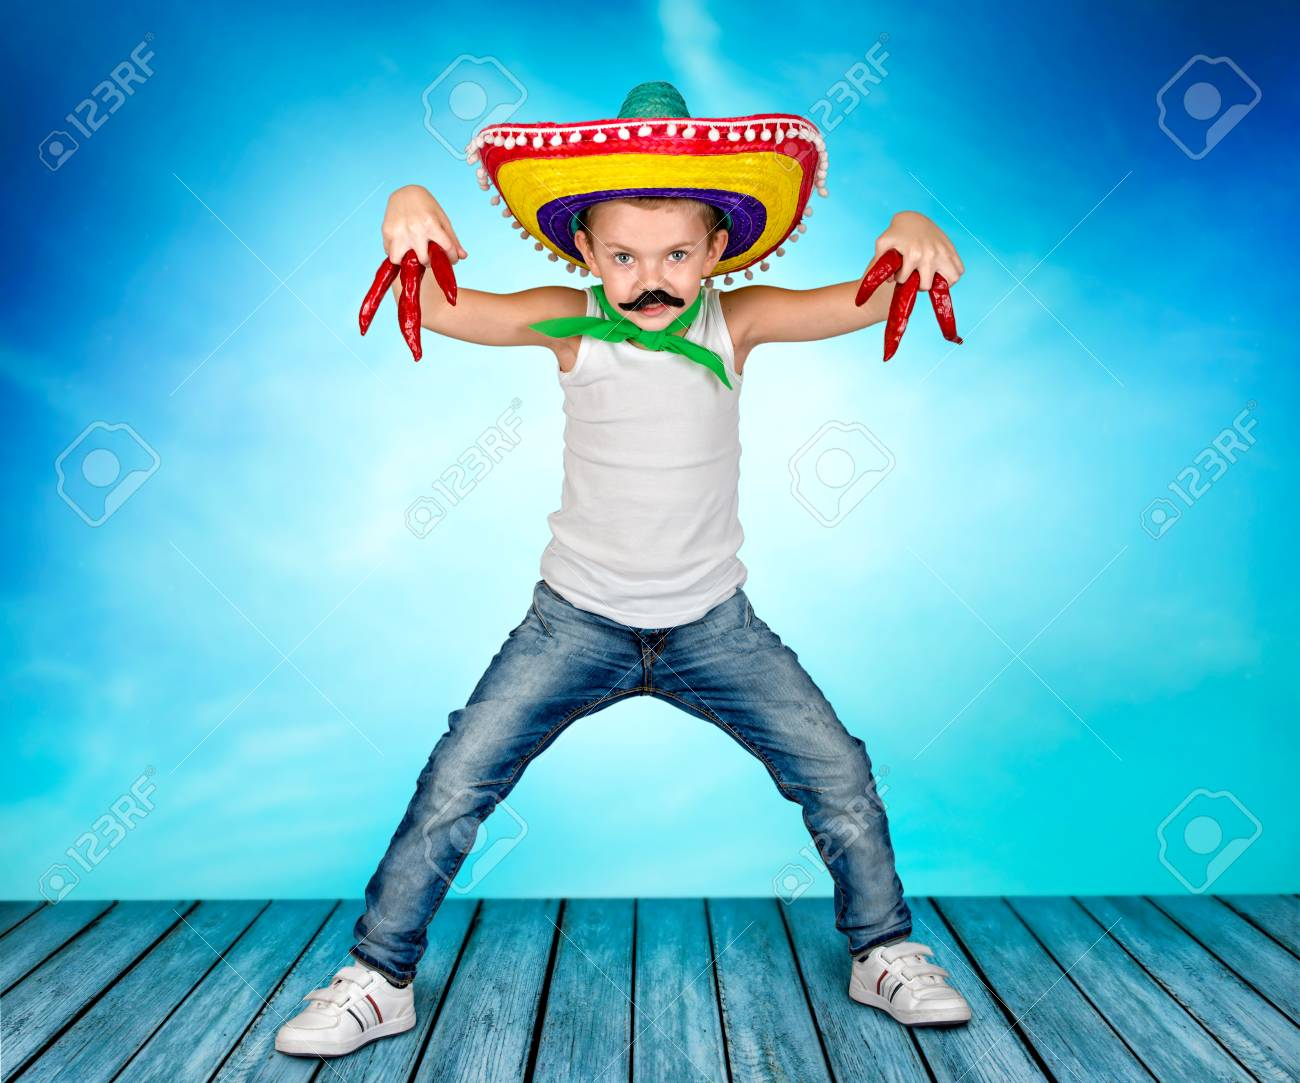 1c40992b9a8d6 Funny boy with a fake mustache and in the Mexican sombrero. Stock Photo -  92817454